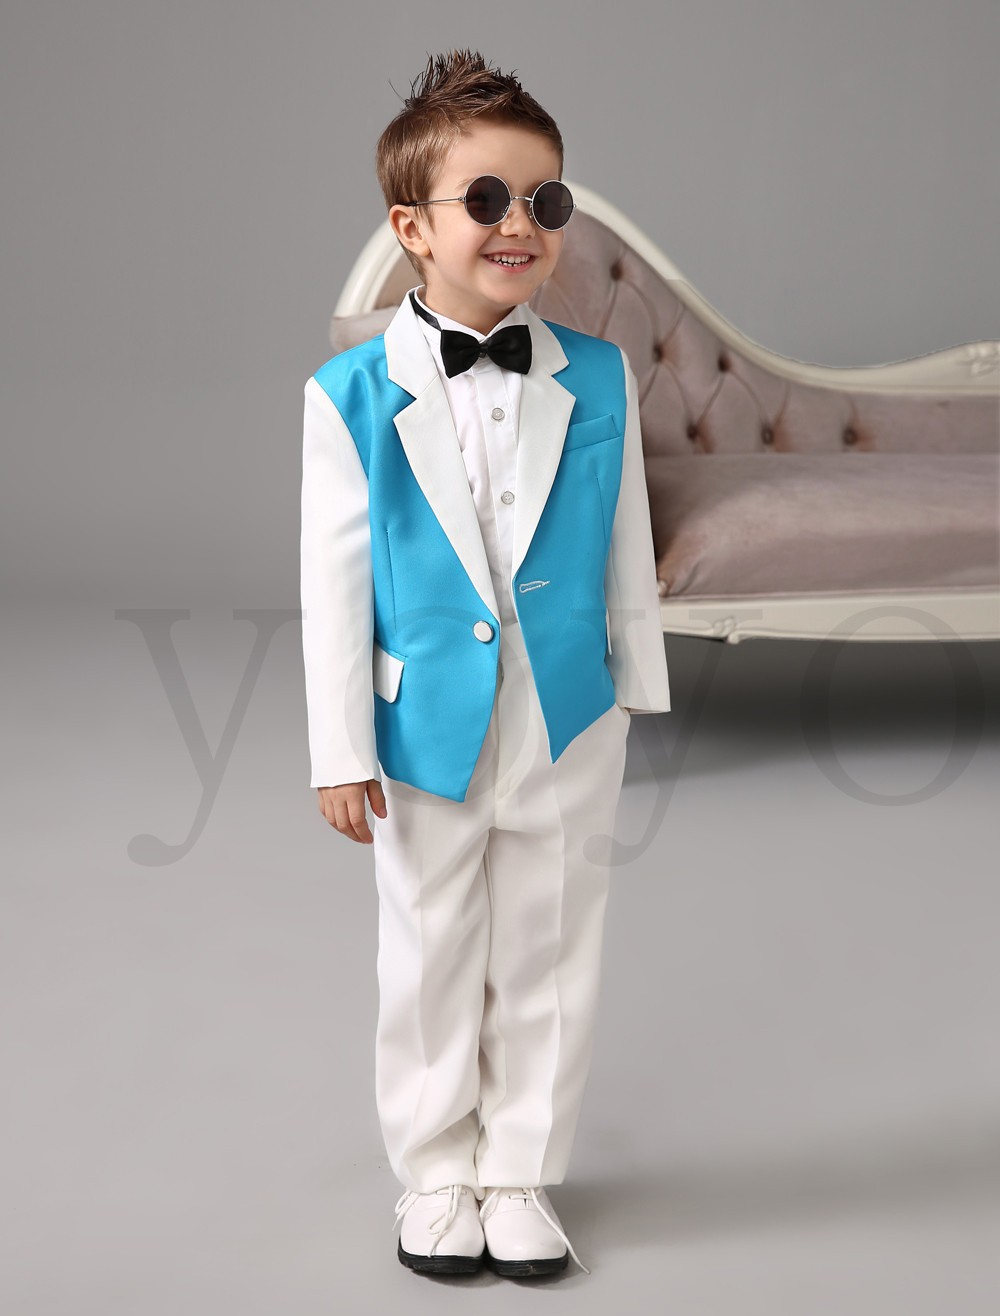 Enchanting Boys Wedding Tuxedos Illustration - Colorful Wedding ...